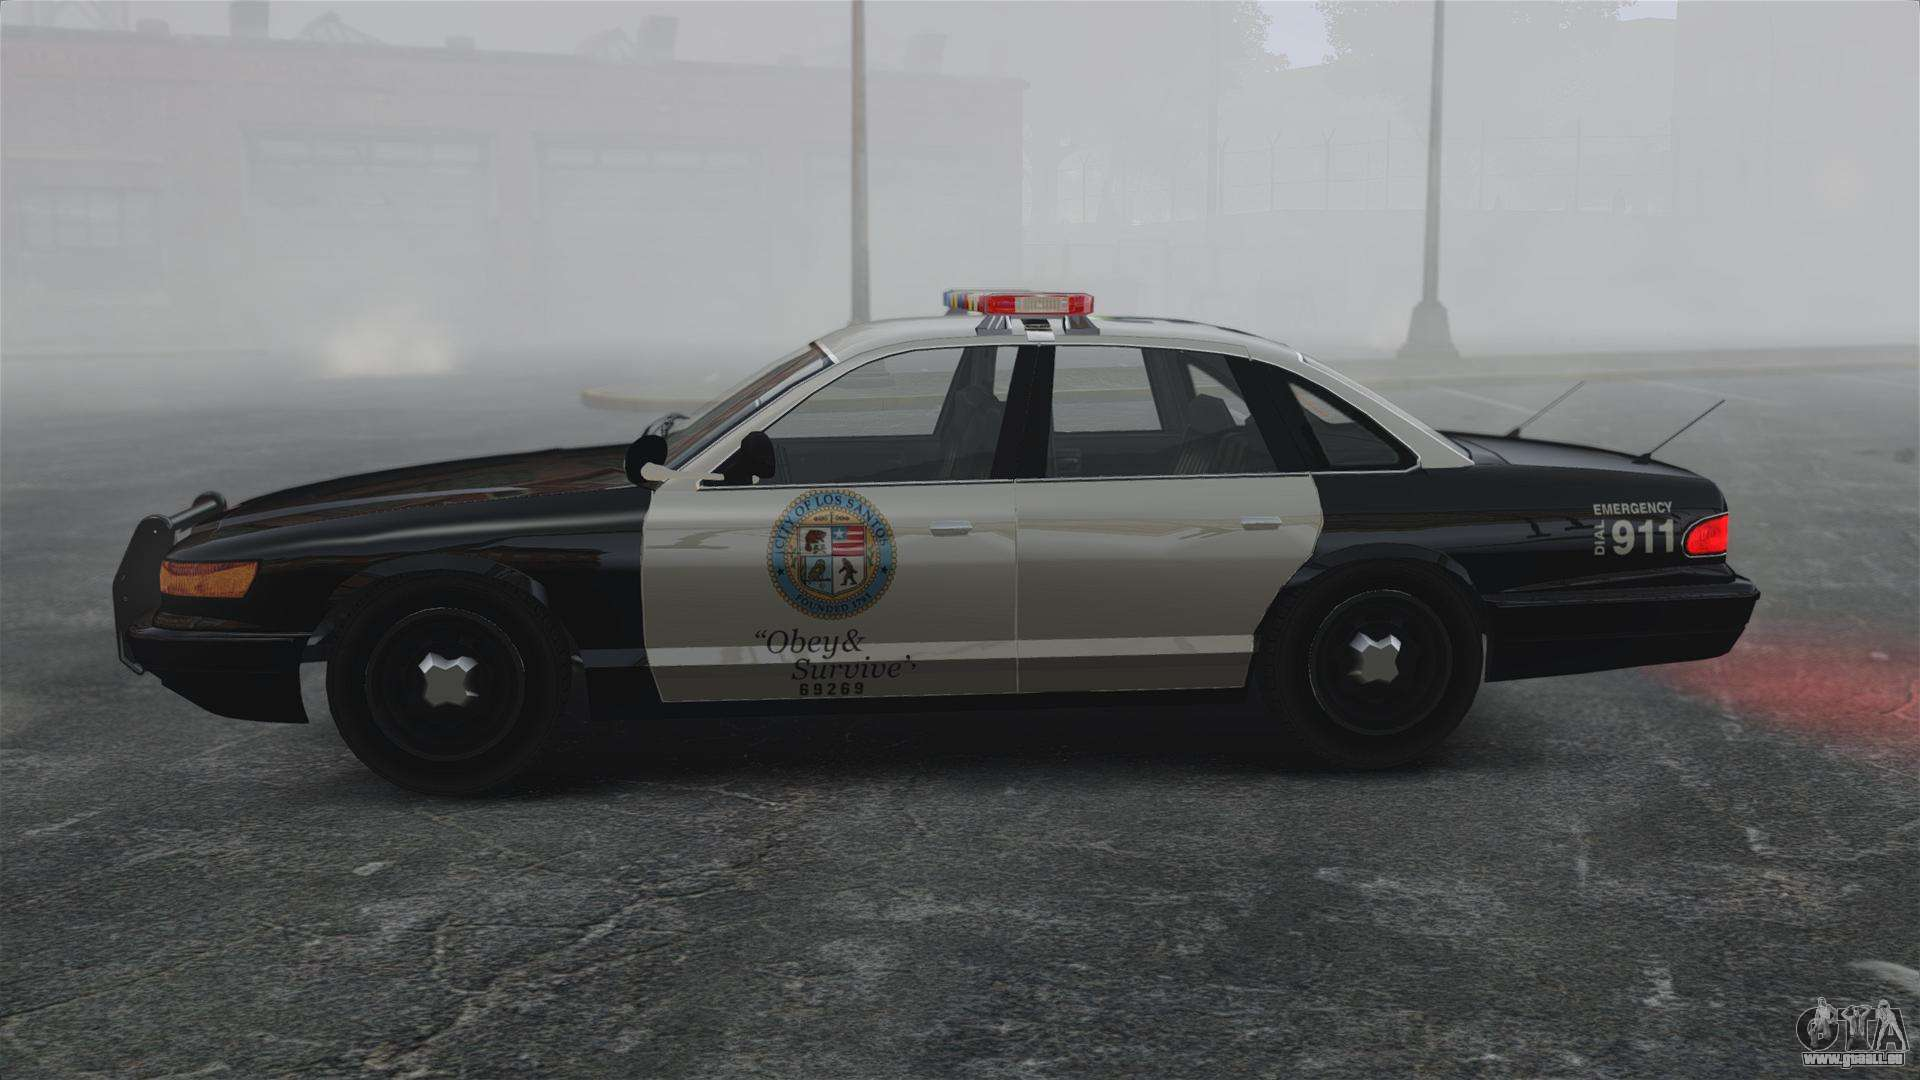 une voiture de police gta v pour gta 4. Black Bedroom Furniture Sets. Home Design Ideas